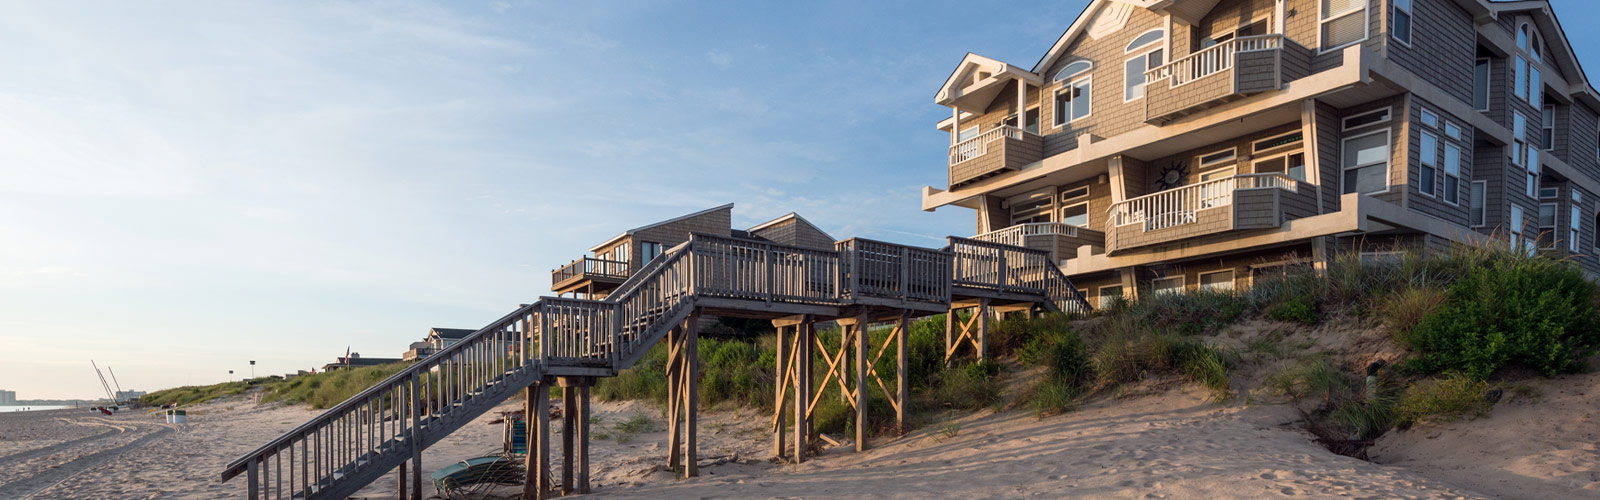 a large beach house with a wooden boardwalk/stairs